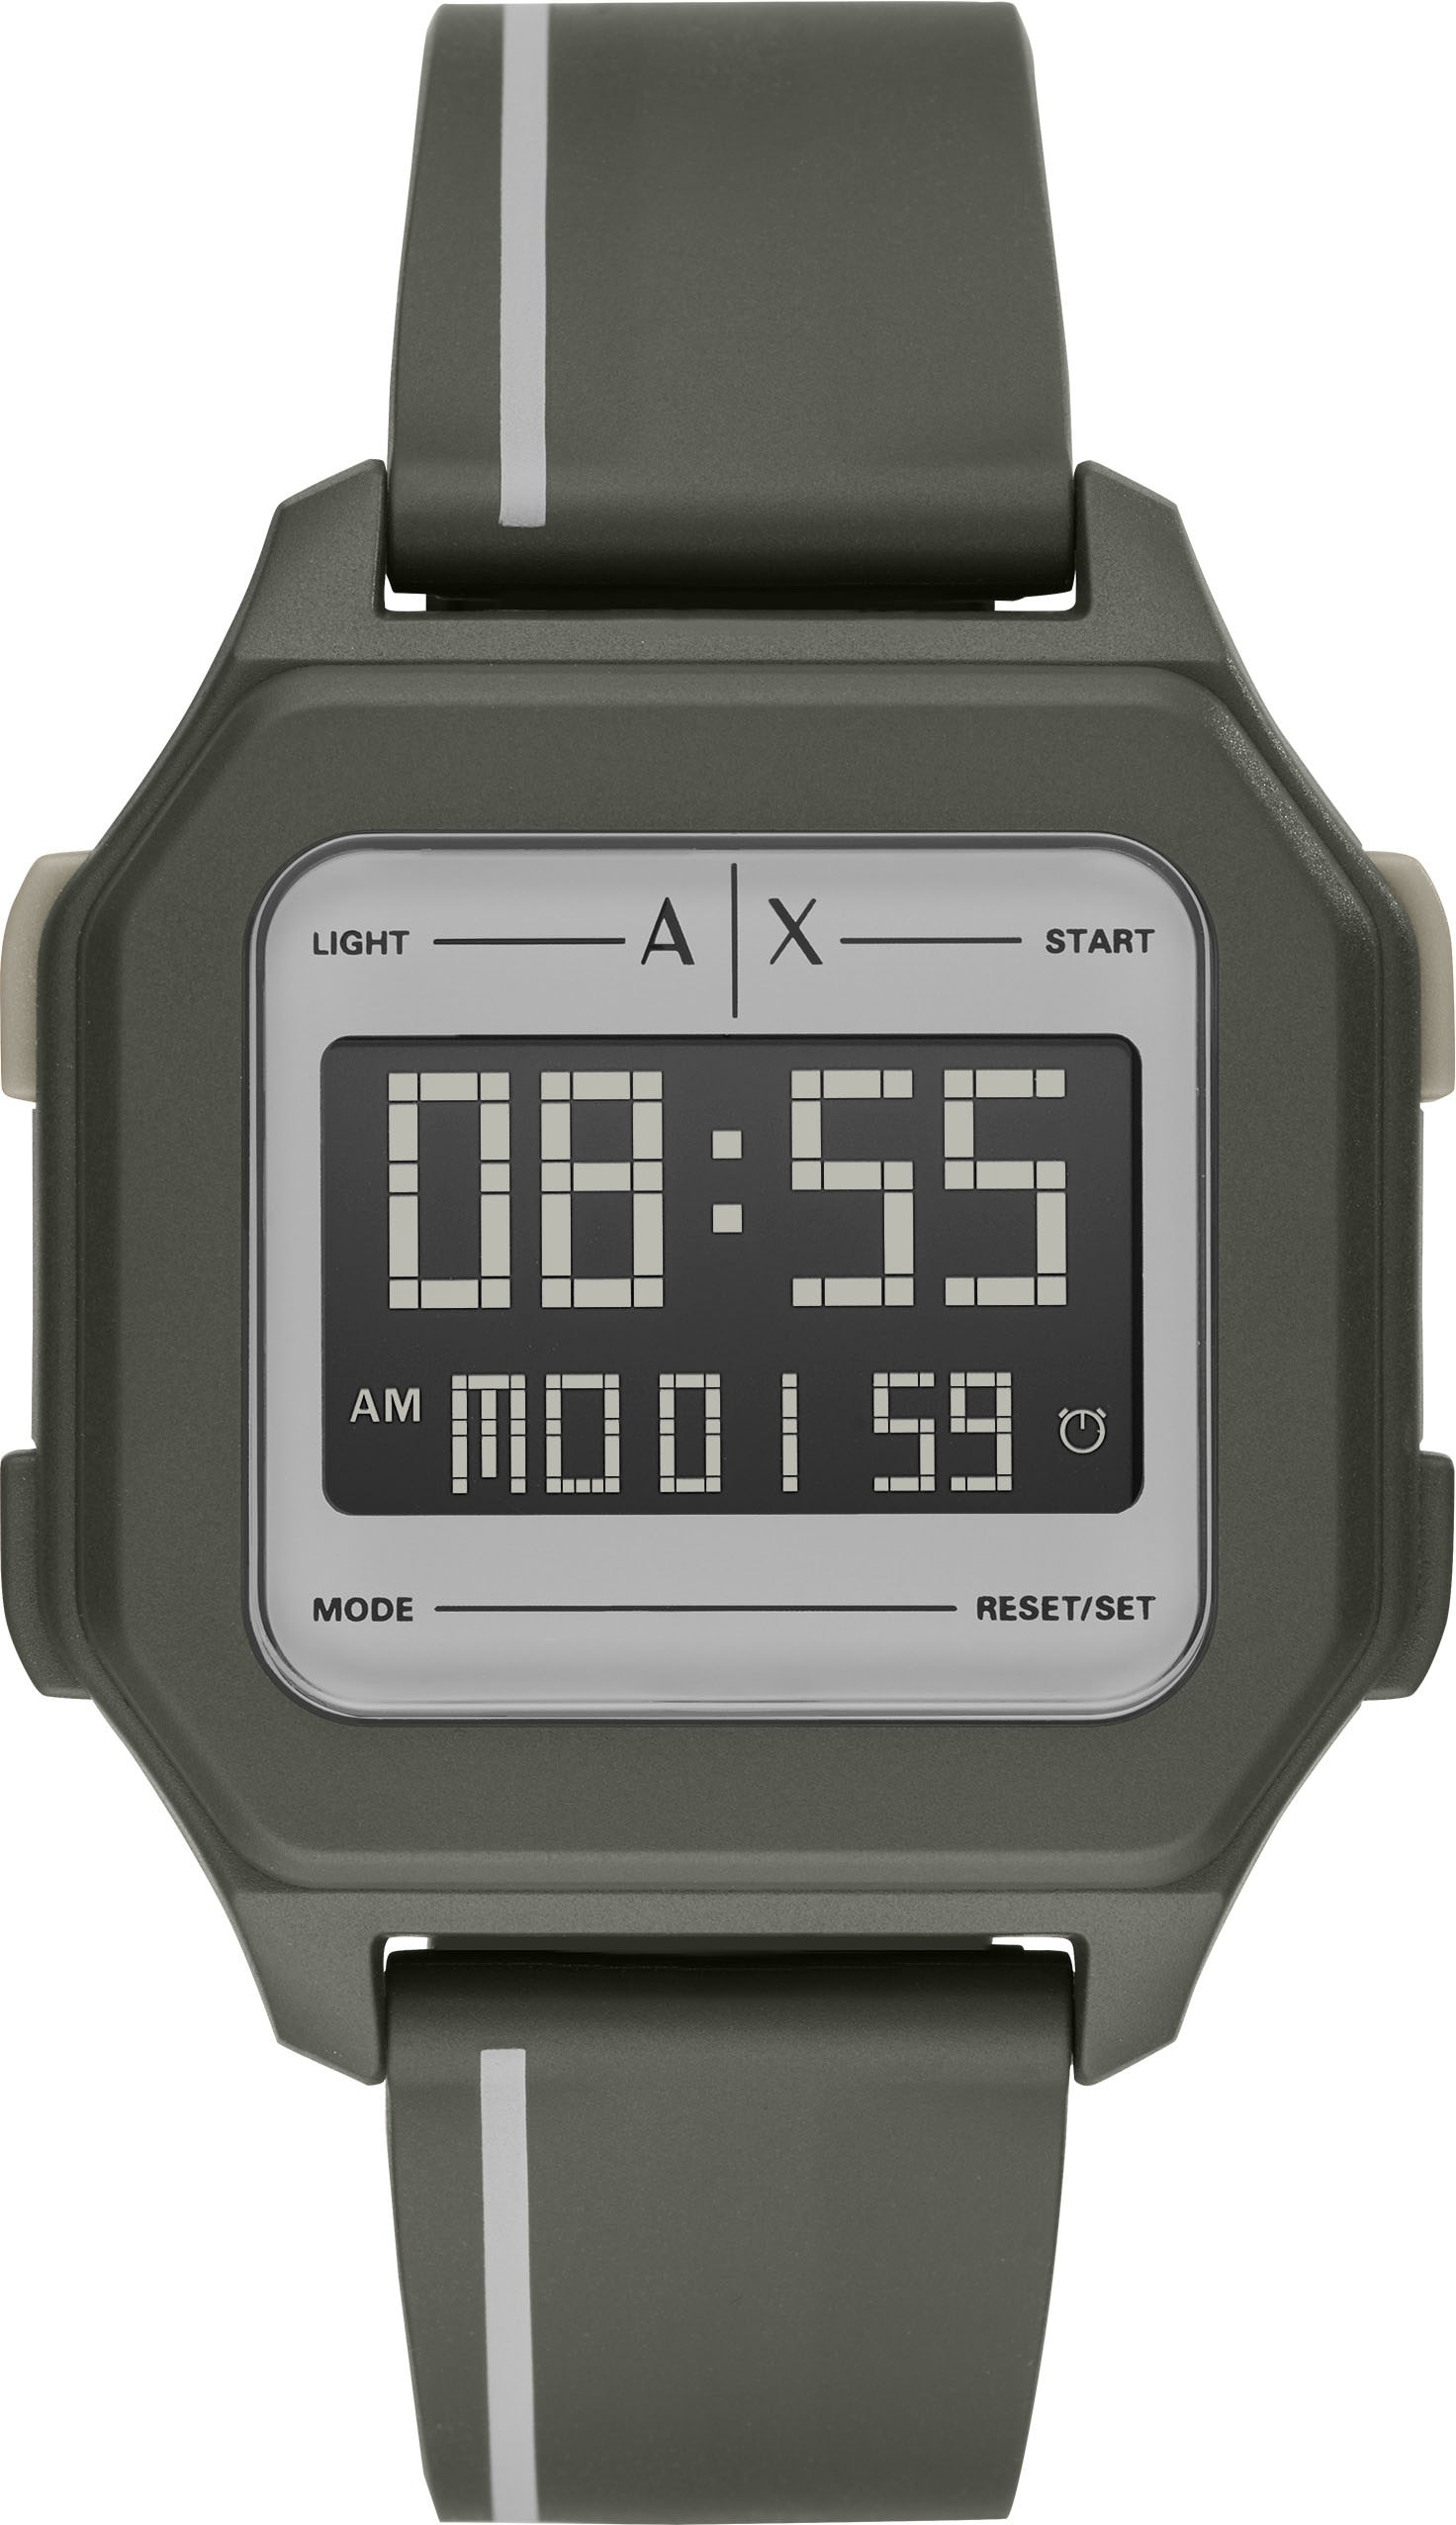 ARMANI EXCHANGE Digitaluhr AX2953 | Uhren > Digitaluhren | Armani Exchange